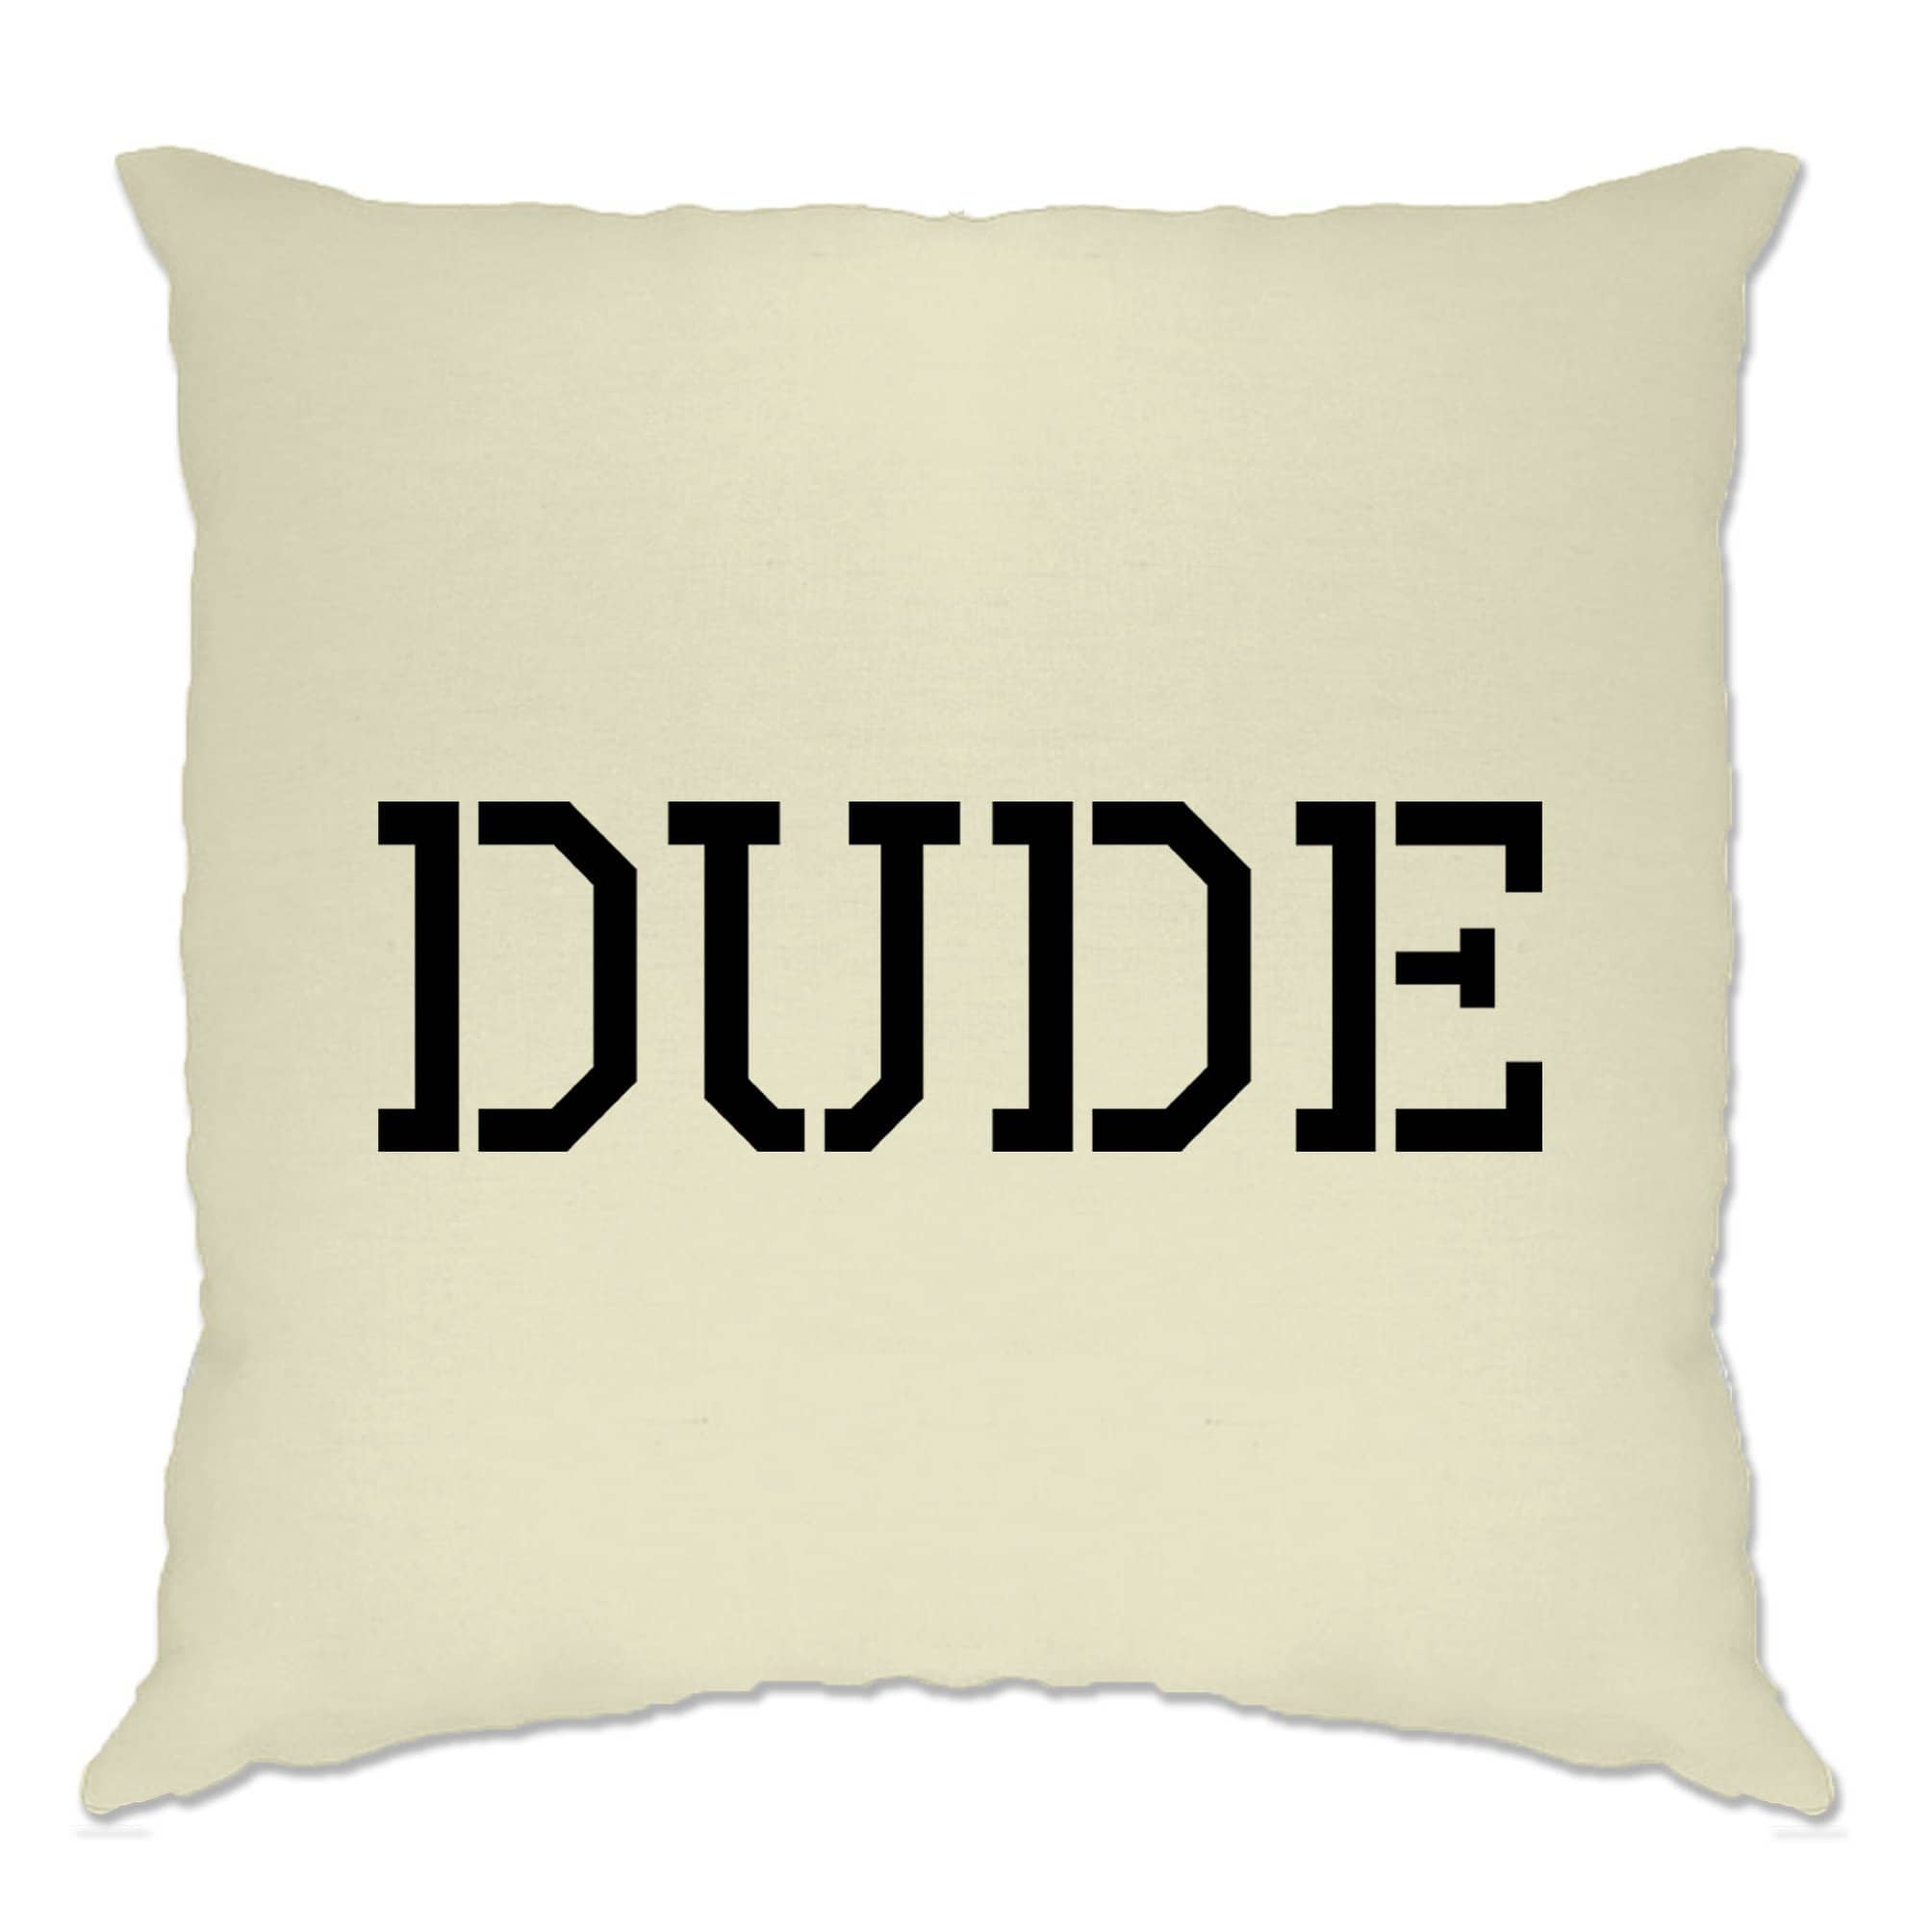 Novelty Cushion Cover With Just The Word Dude